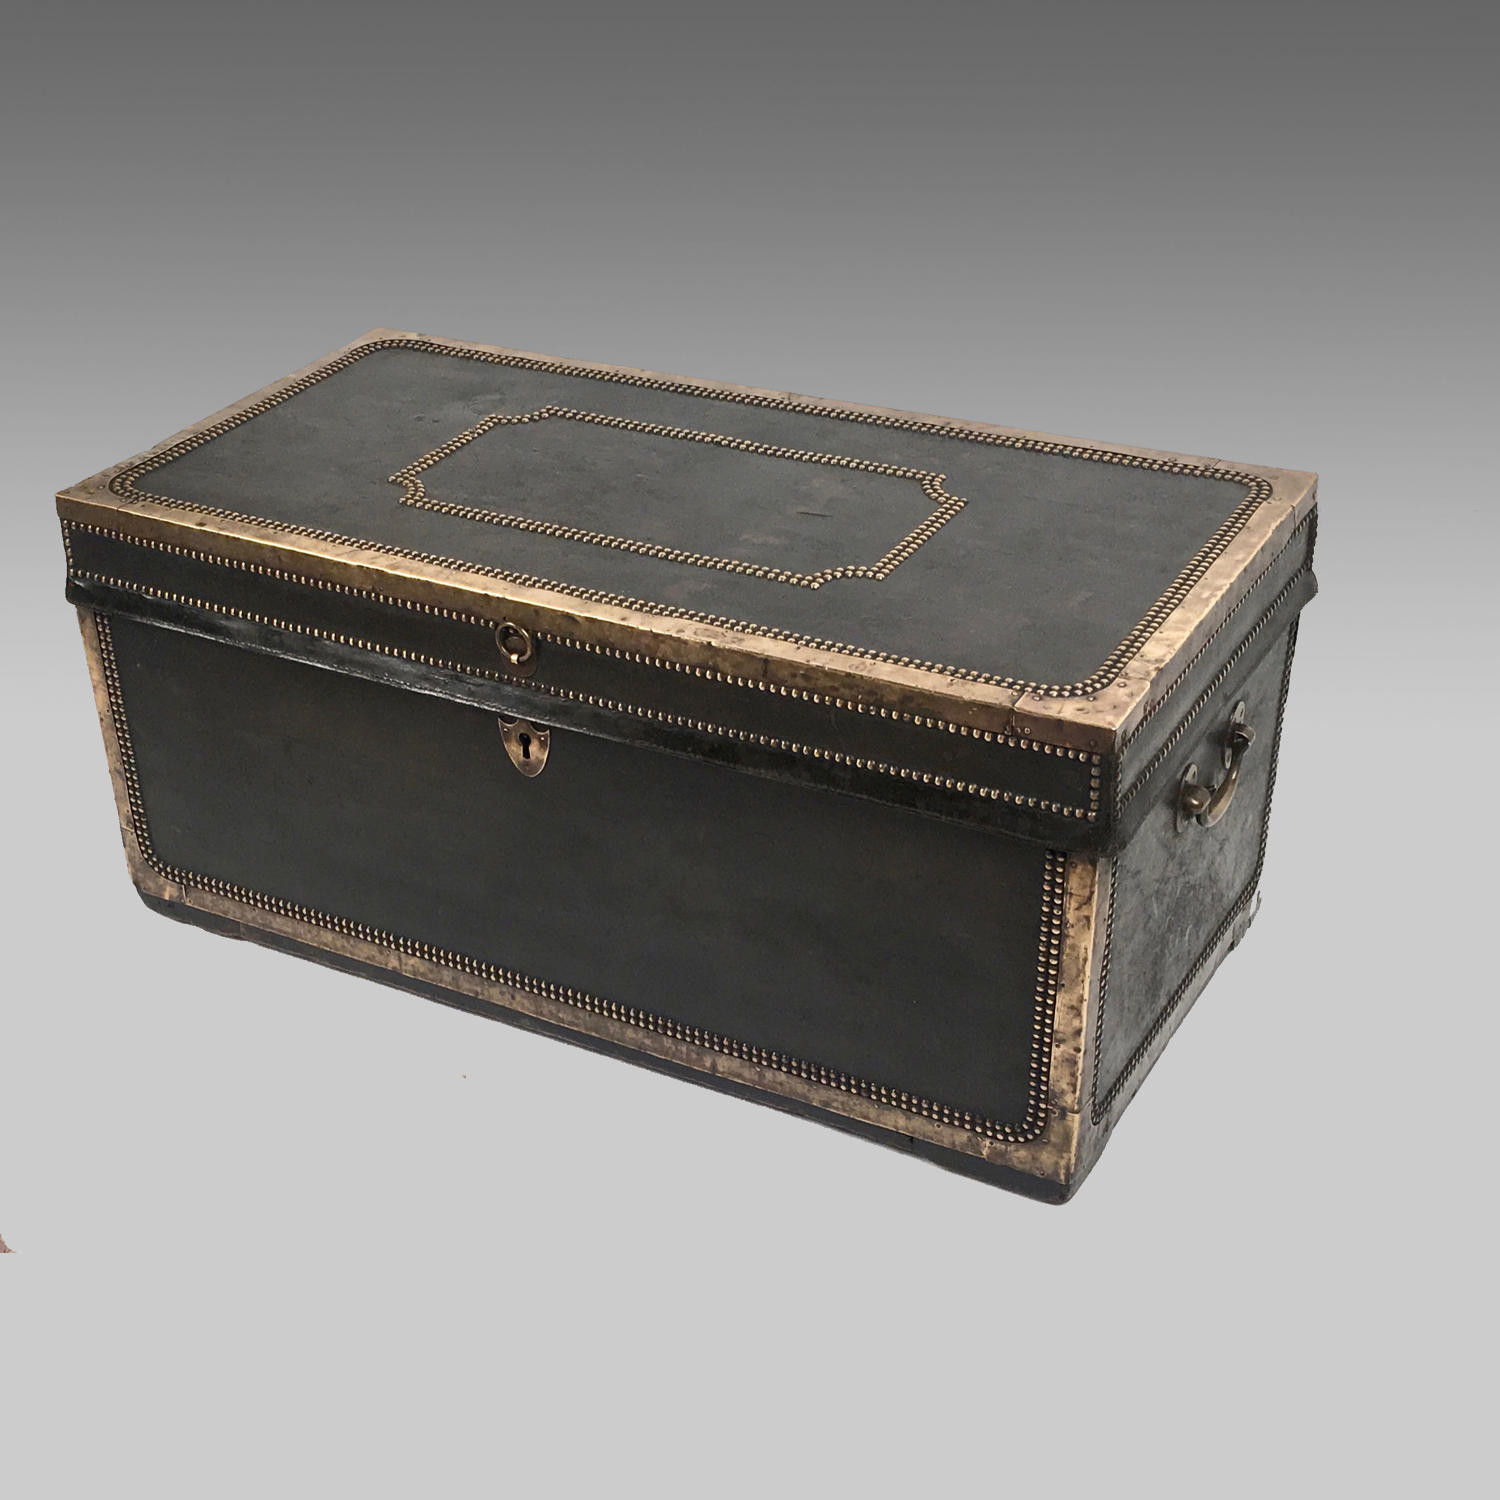 19th century China Trade camphor-wood trunk